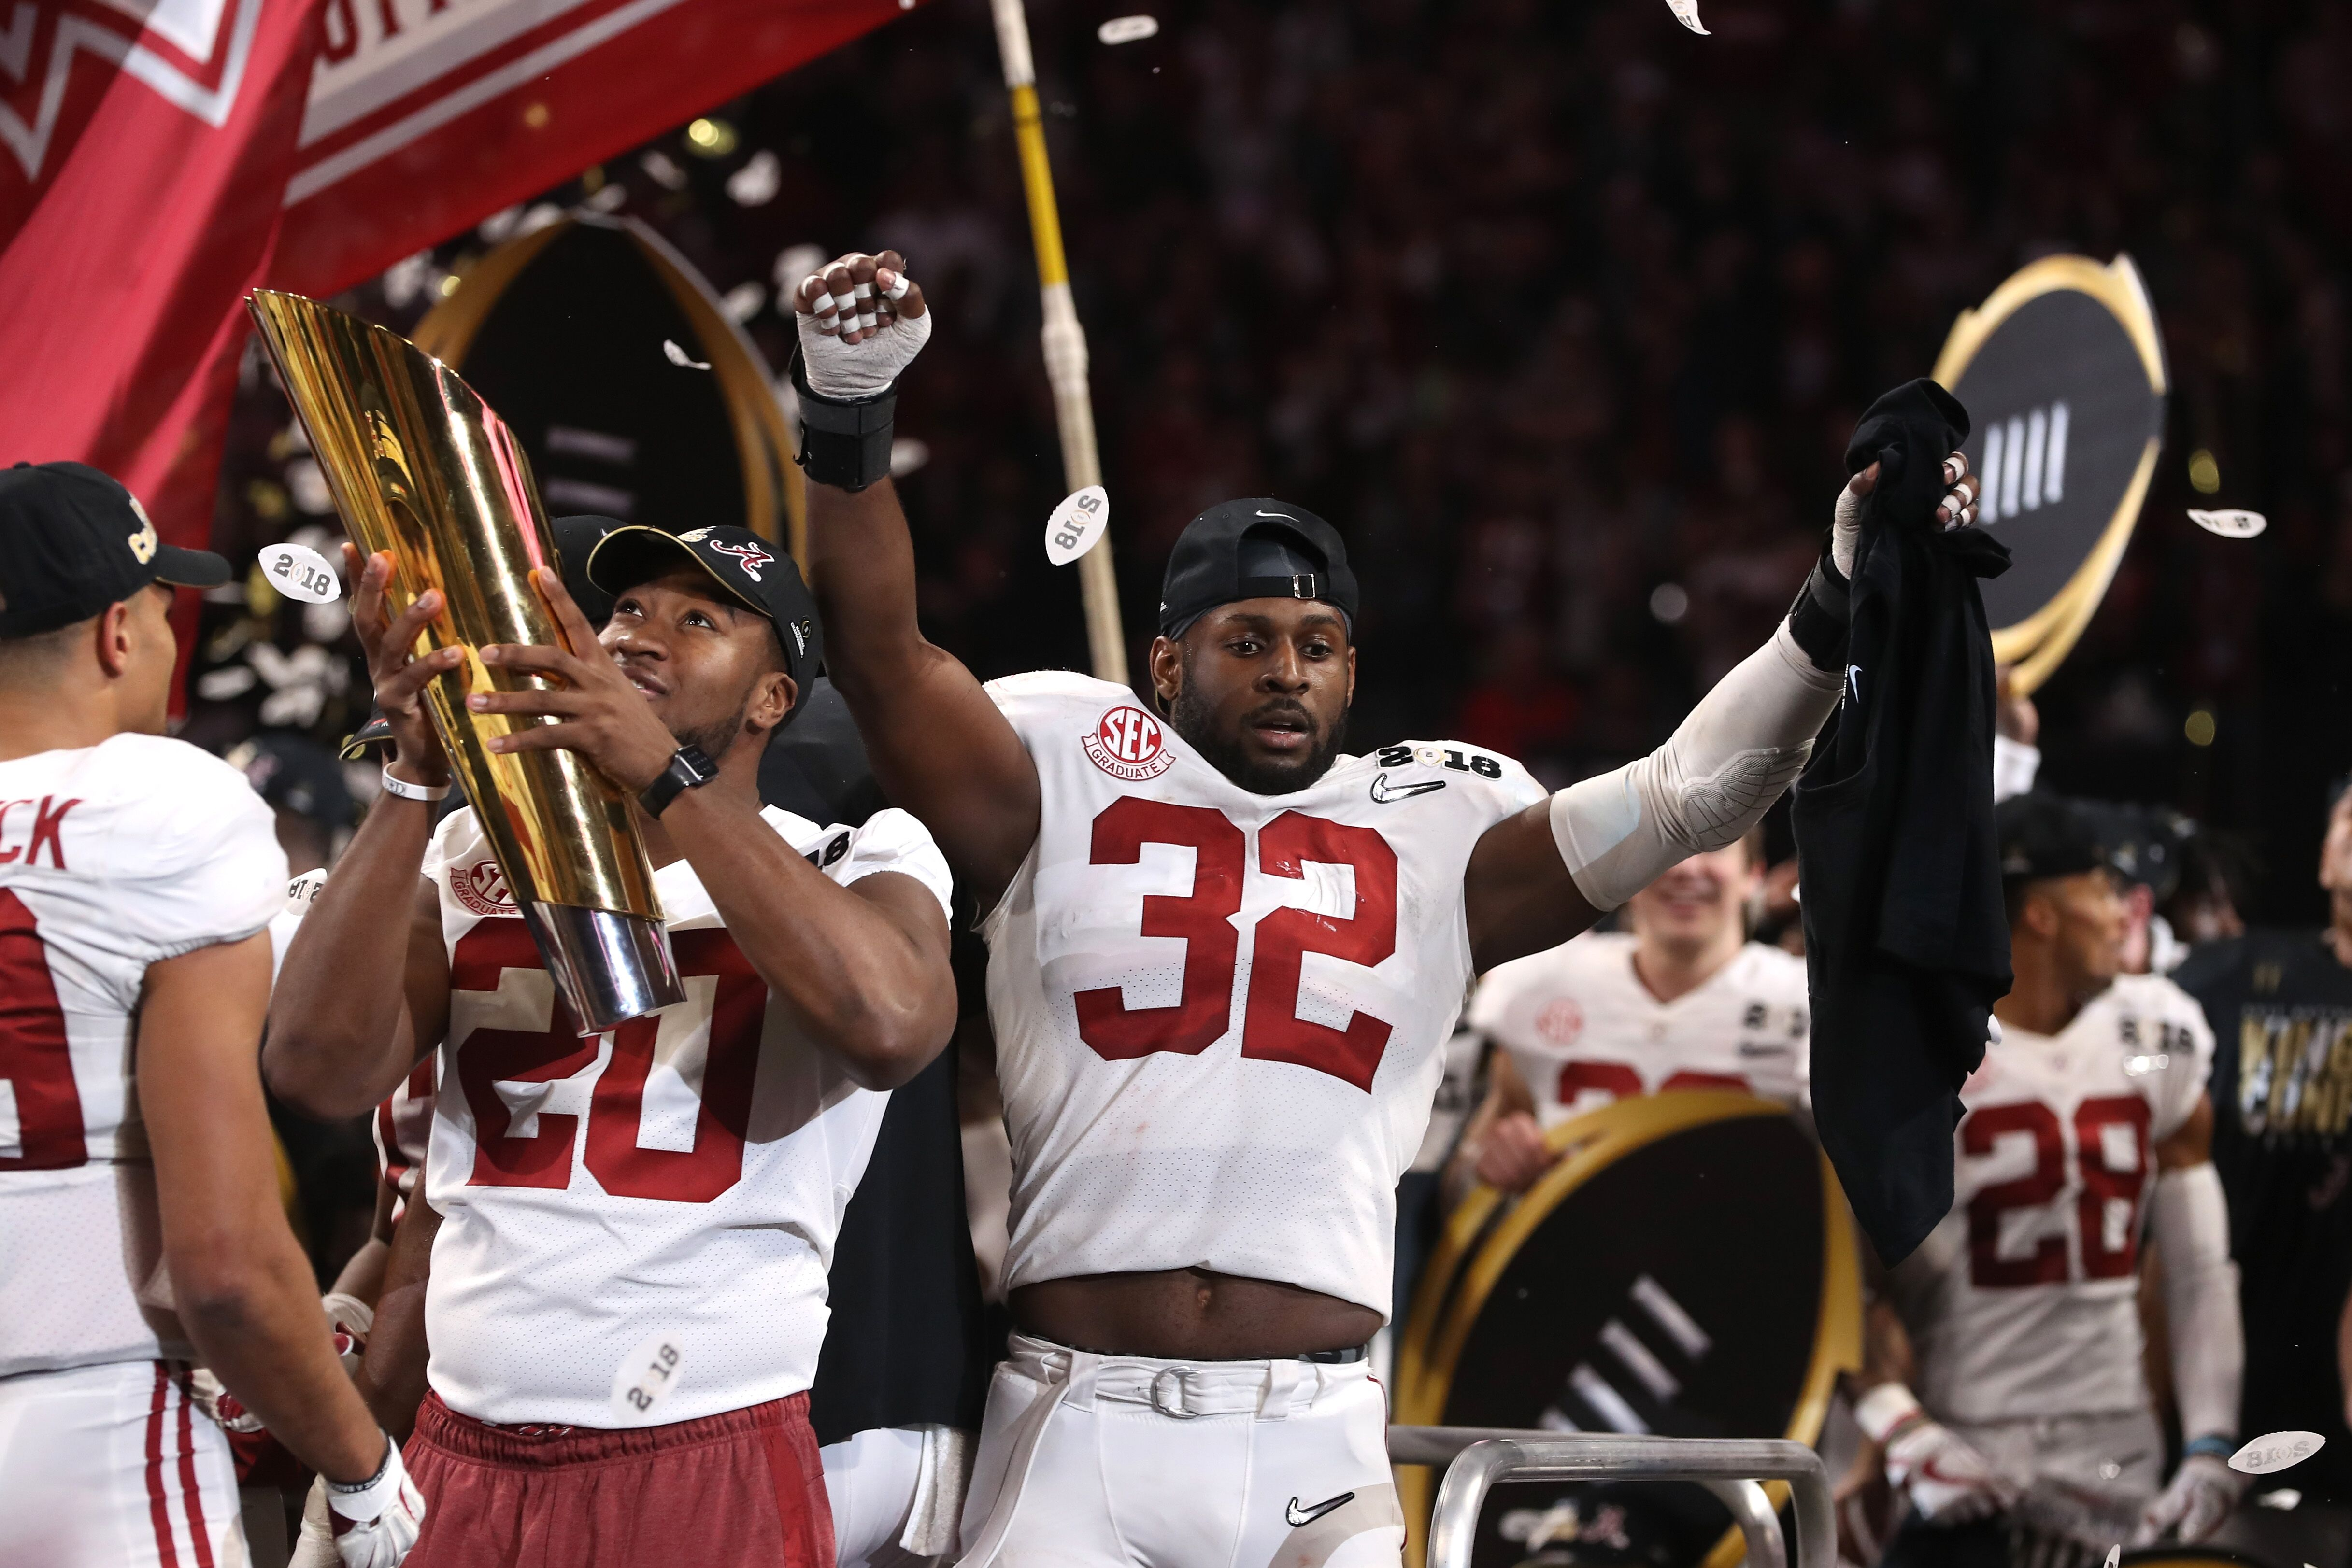 902796146-cfp-national-championship-presented-by-at.jpg